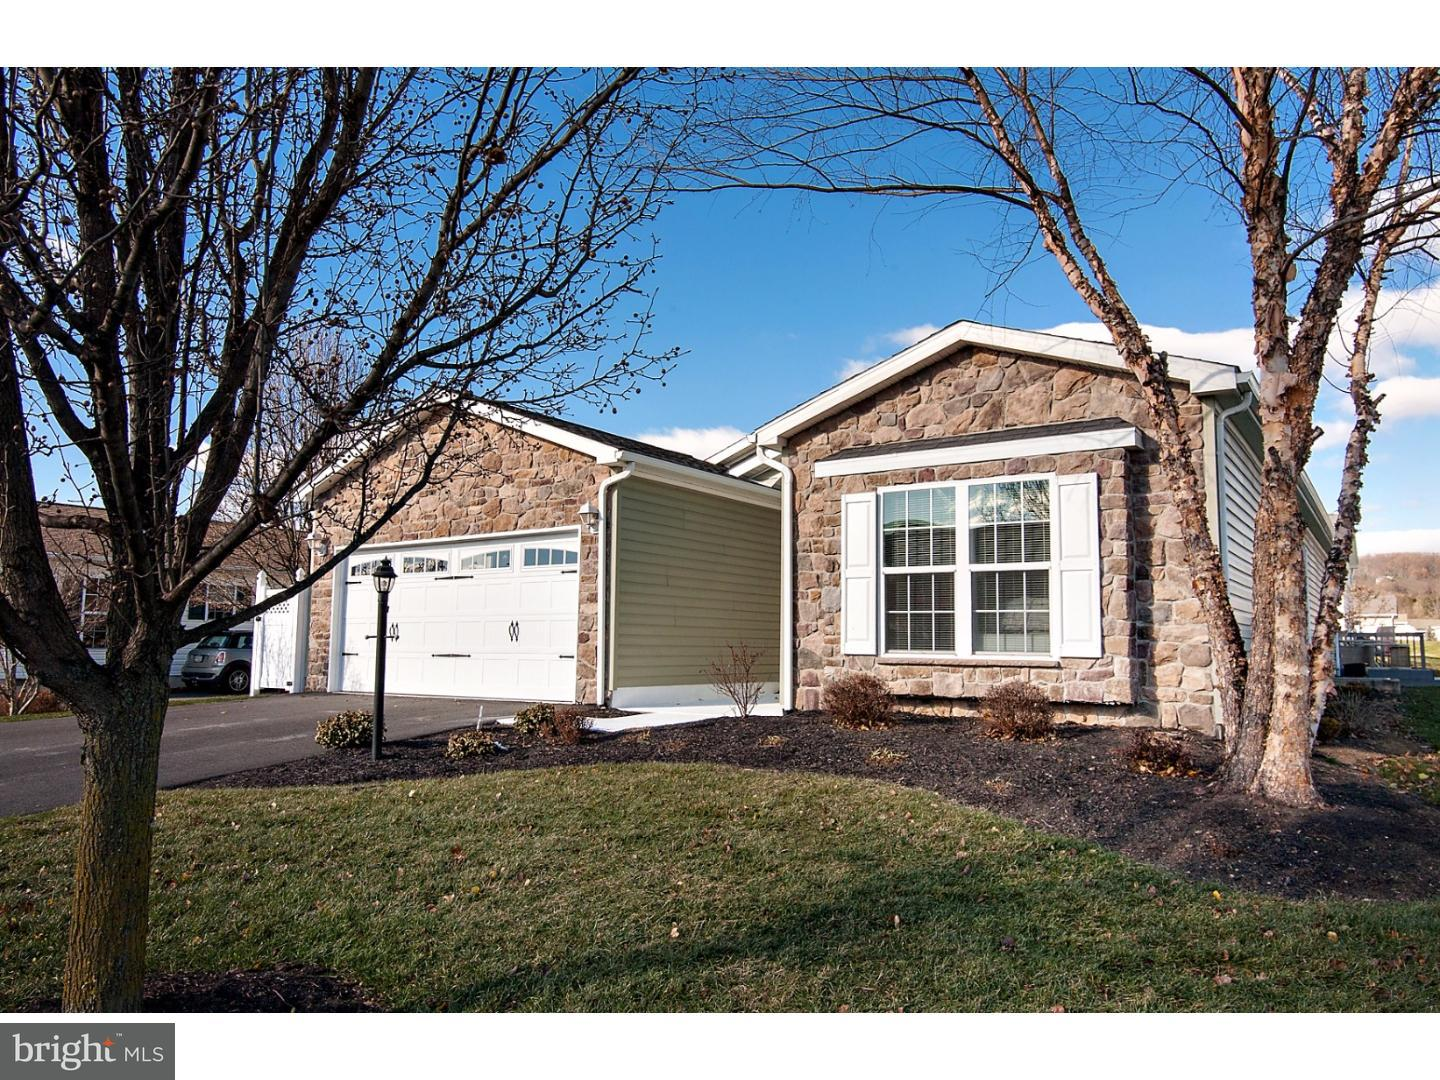 10 EAGLES WATCH N, BECHTELSVILLE - Listed at $199,500, BECHTELSVILLE